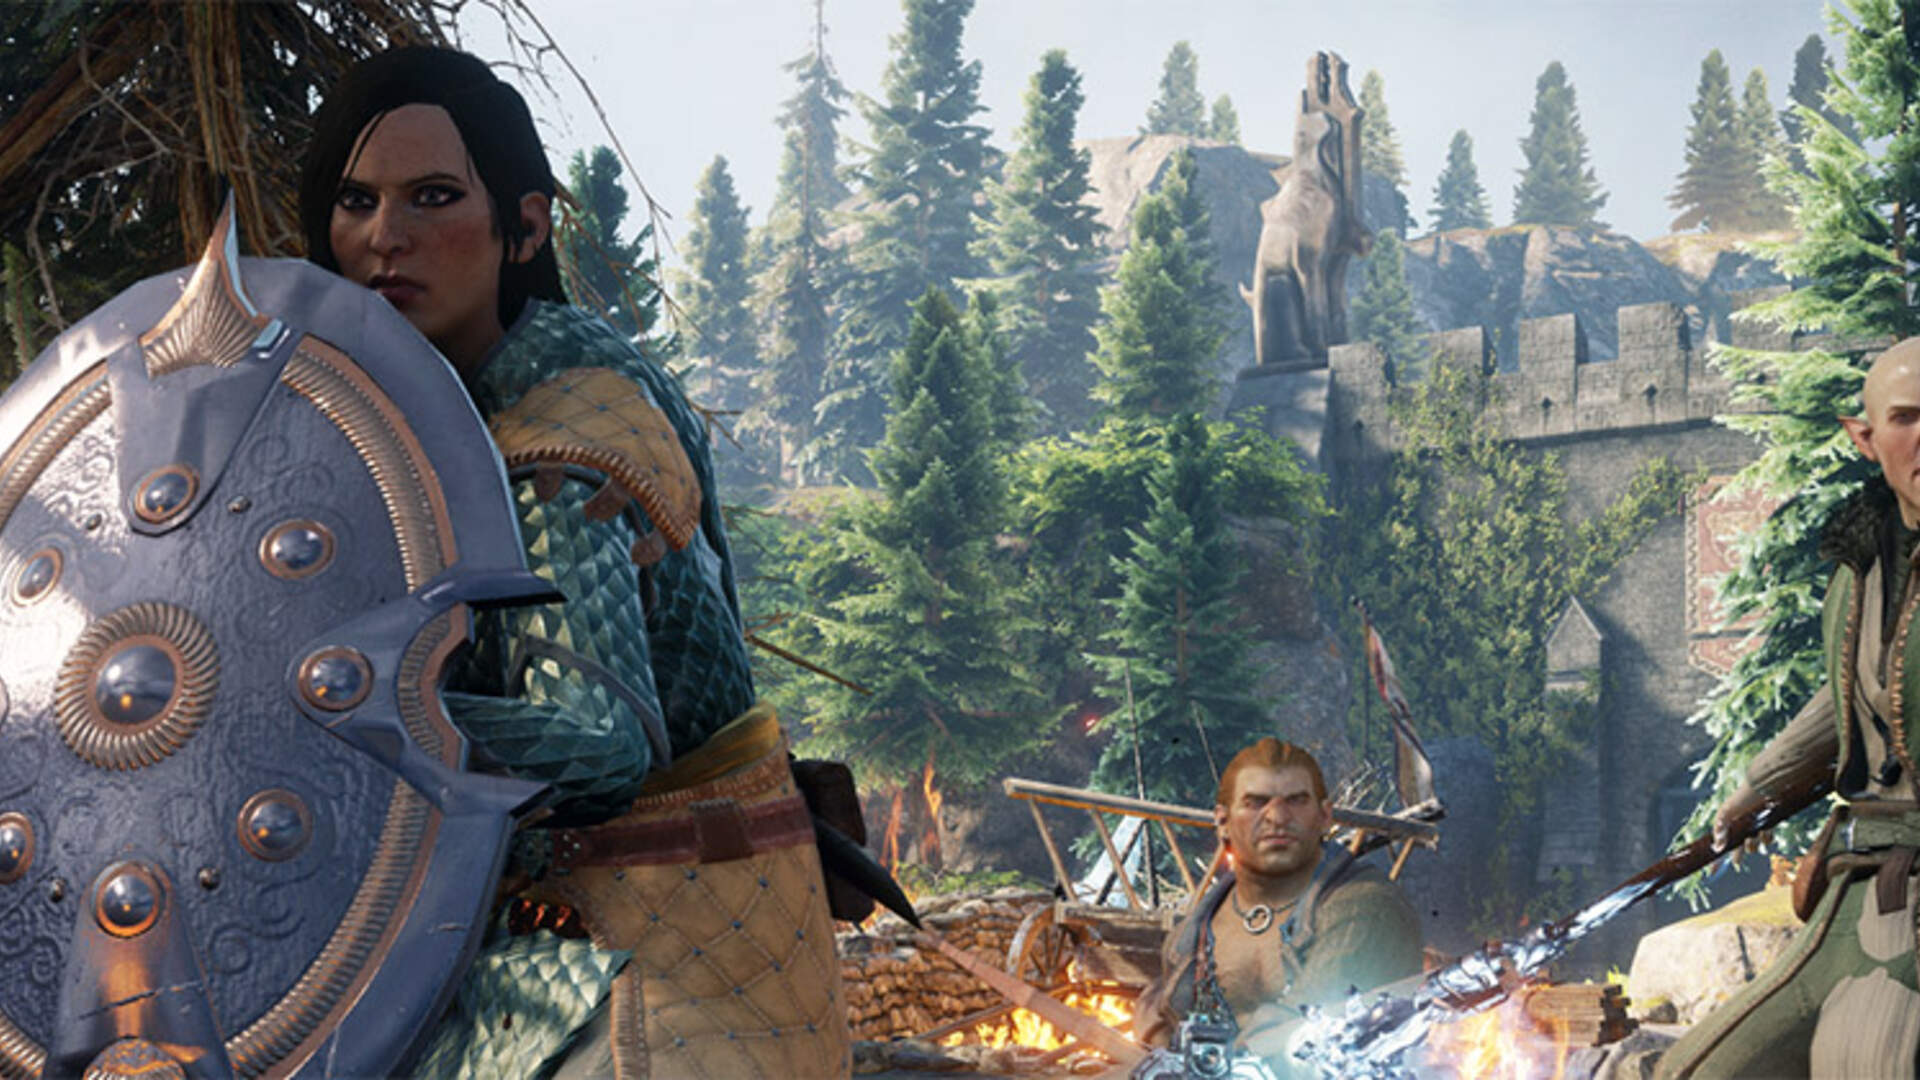 Dragon Age: Inquisition PS4 Review: Sealing the Rift